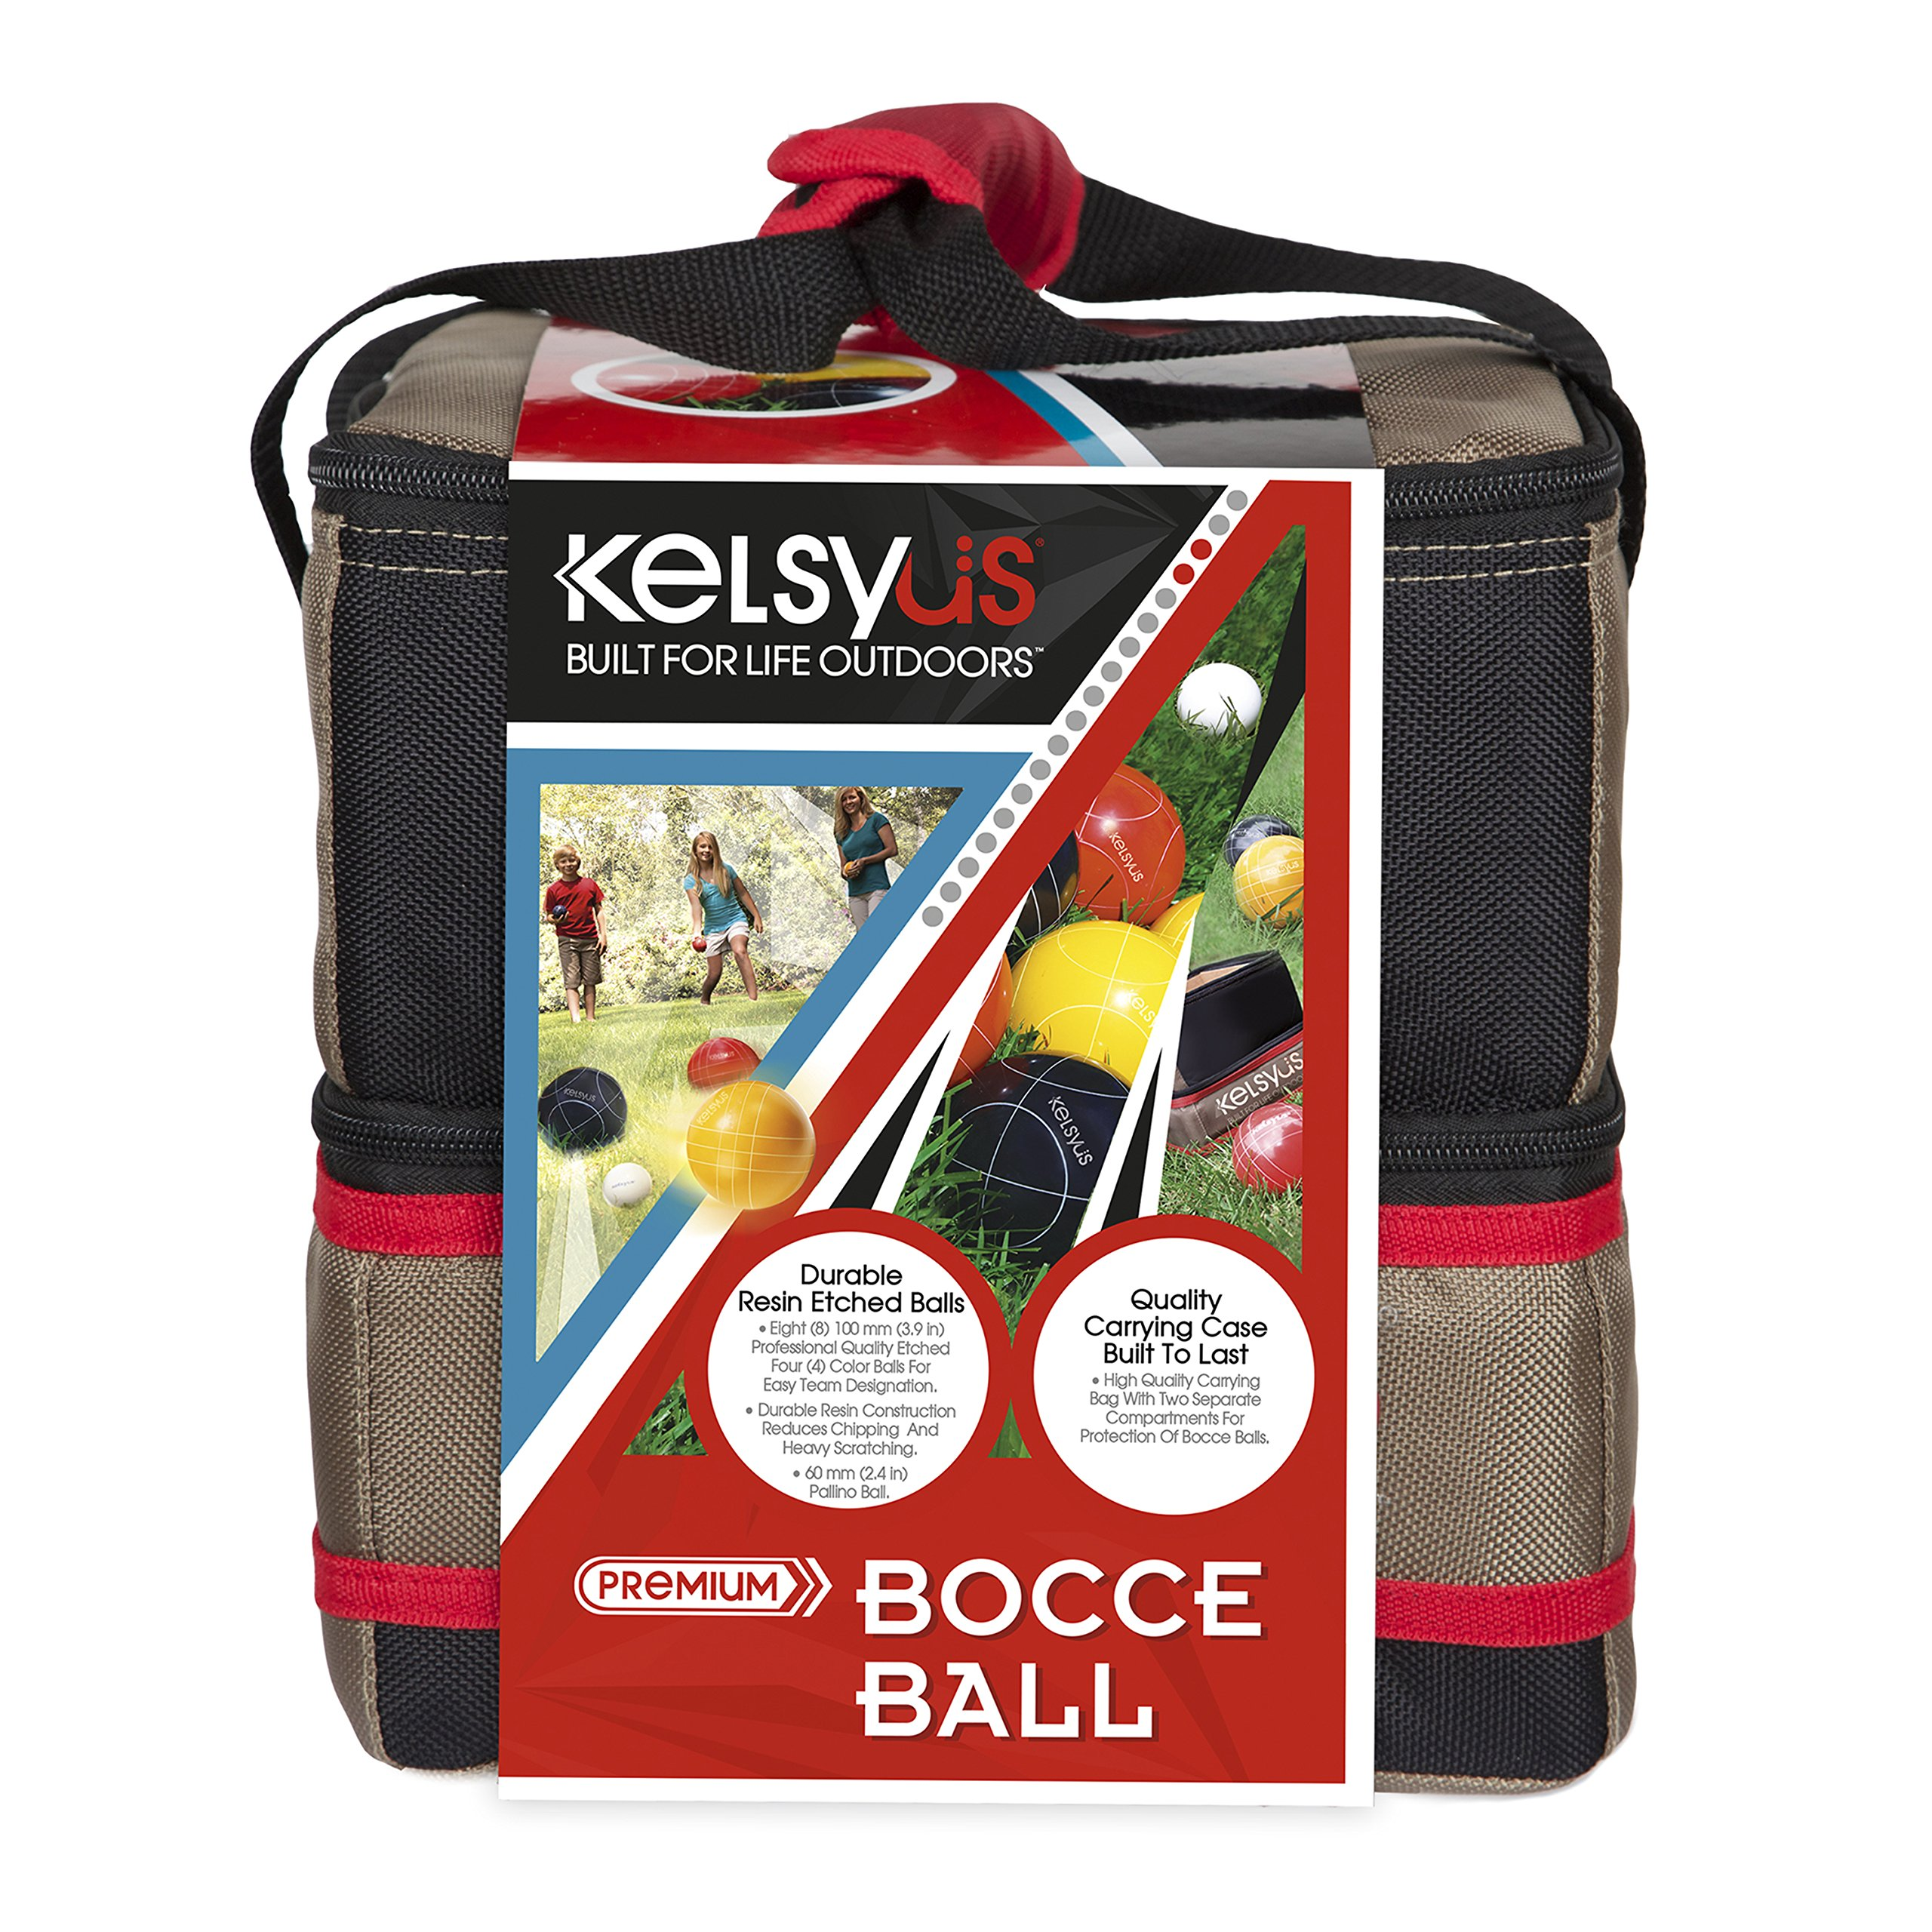 Kelsyus Premium Bocce Ball Game by Kelsyus (Image #4)